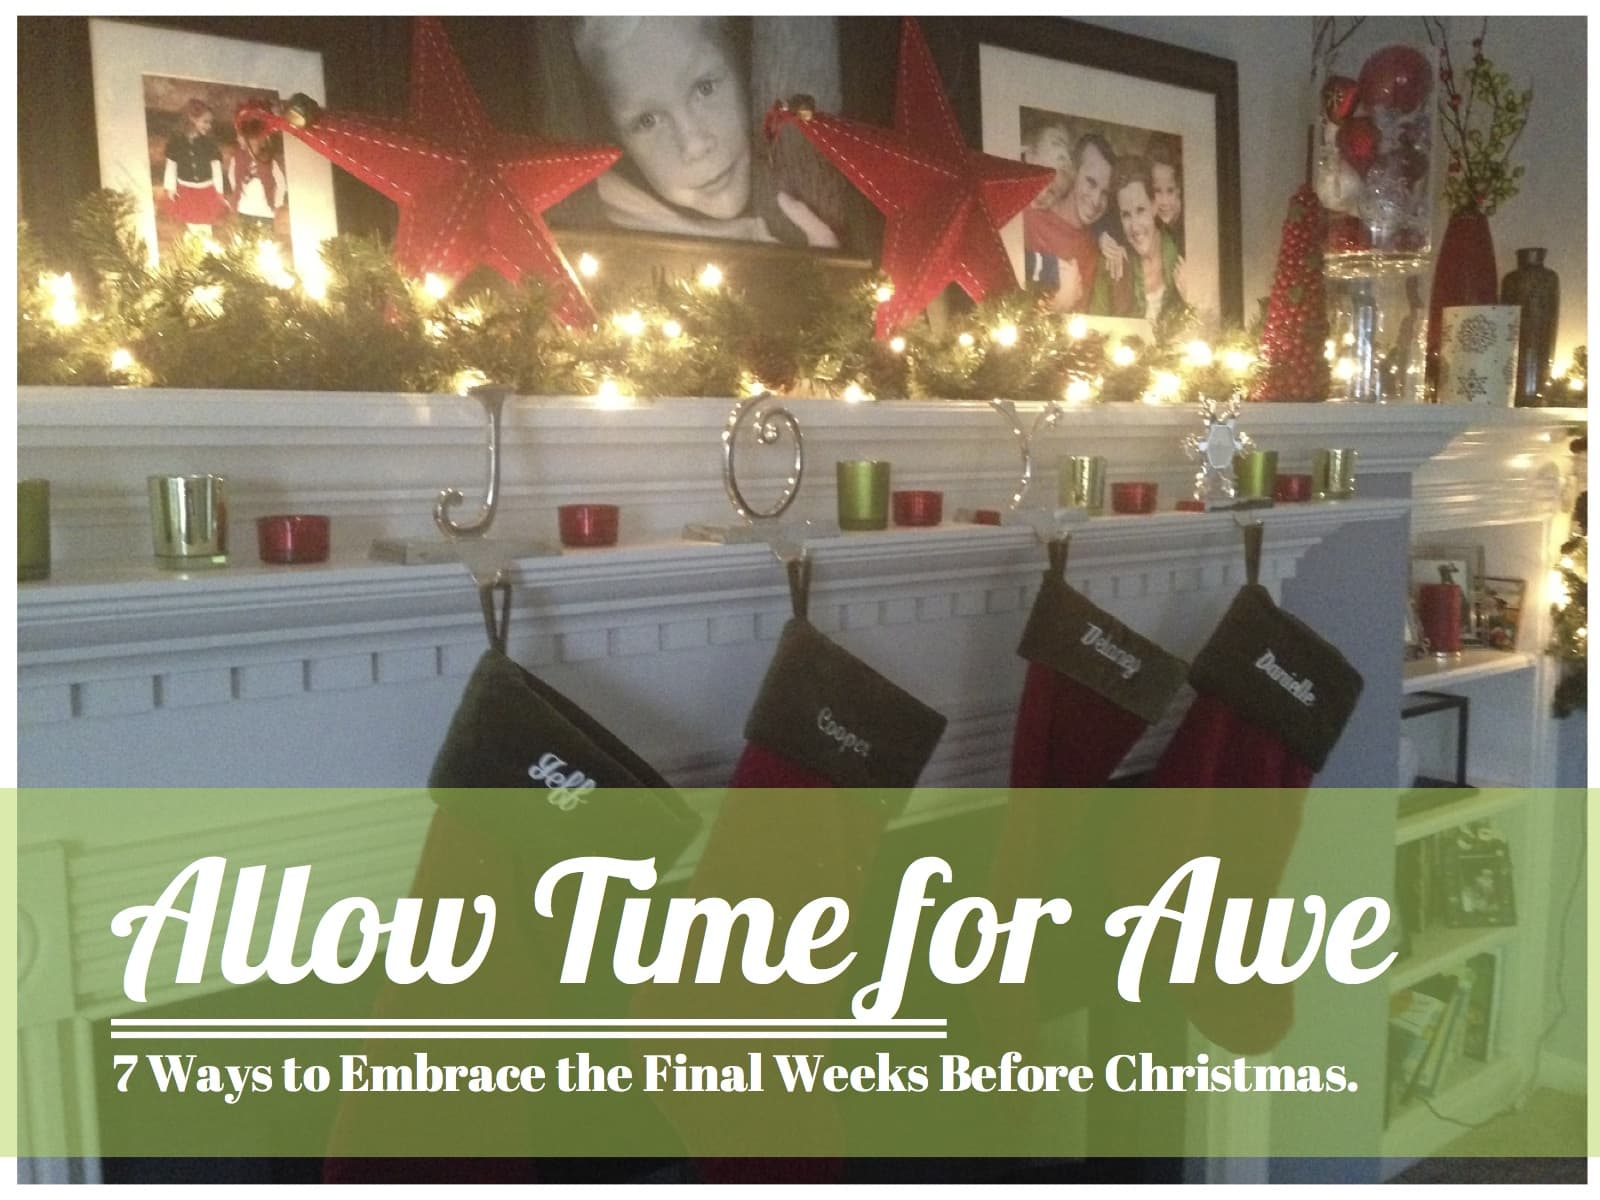 Allow Time for Awe - 7 Ways to Embrace the Final Weeks Before Christmas